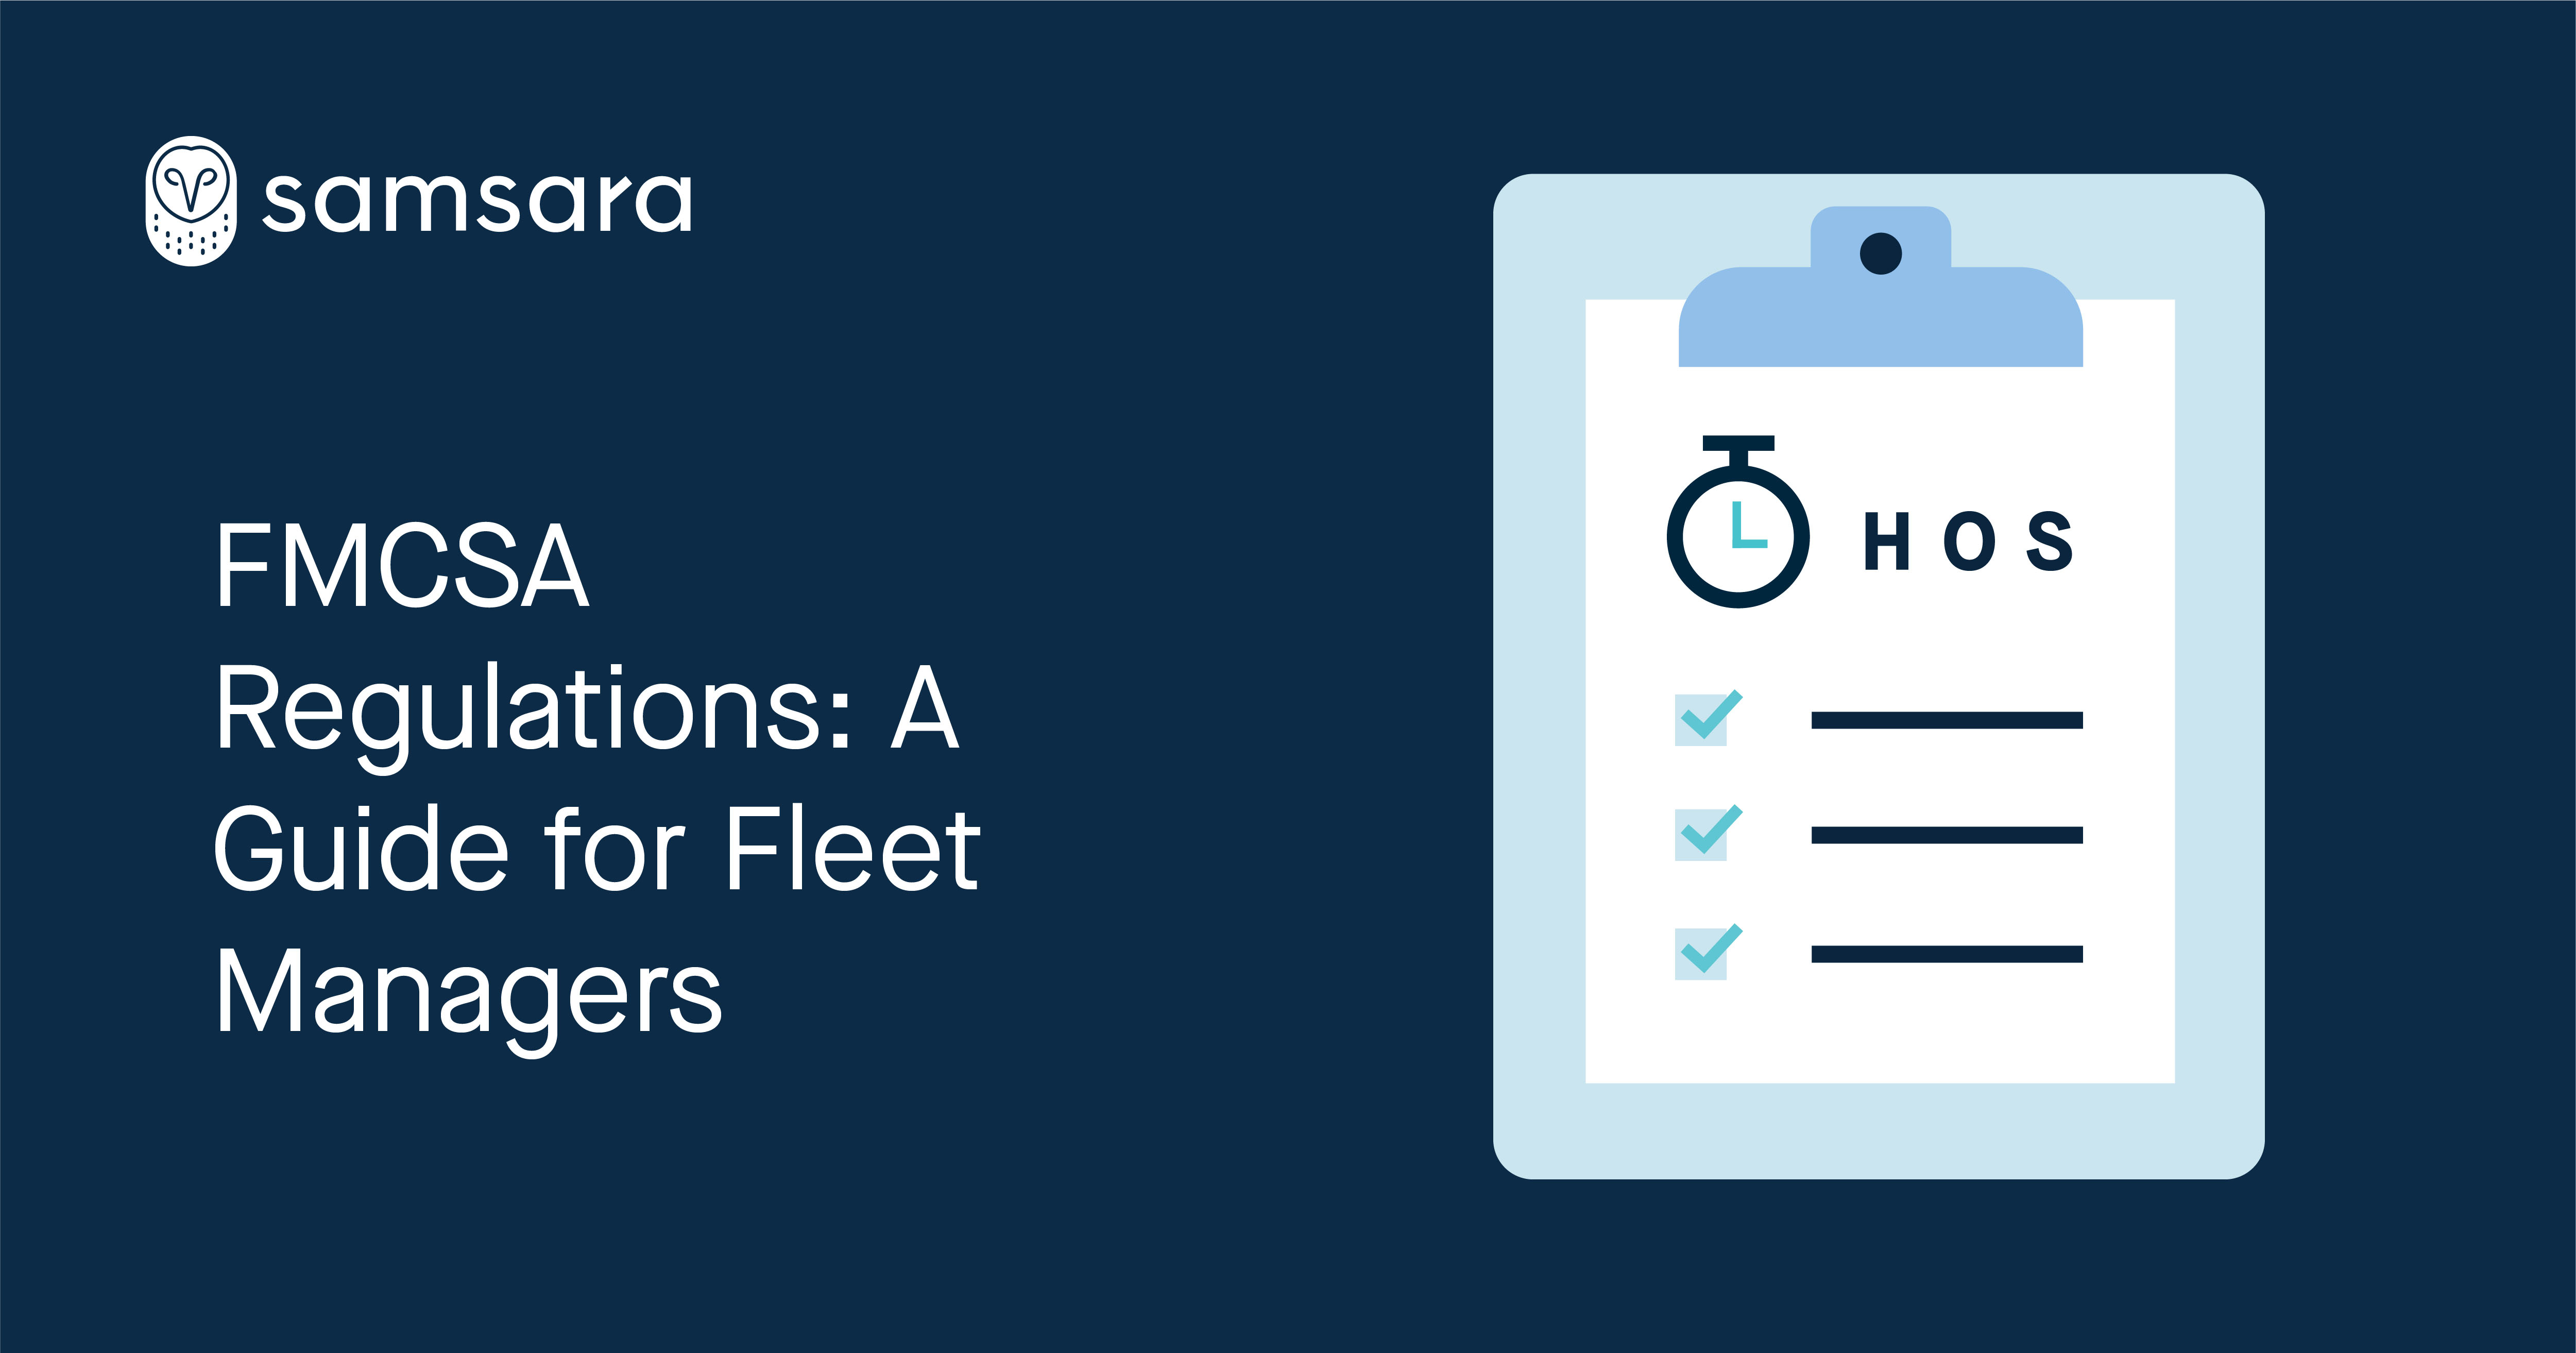 FMCSA Regulations: A Guide for Fleet Managers